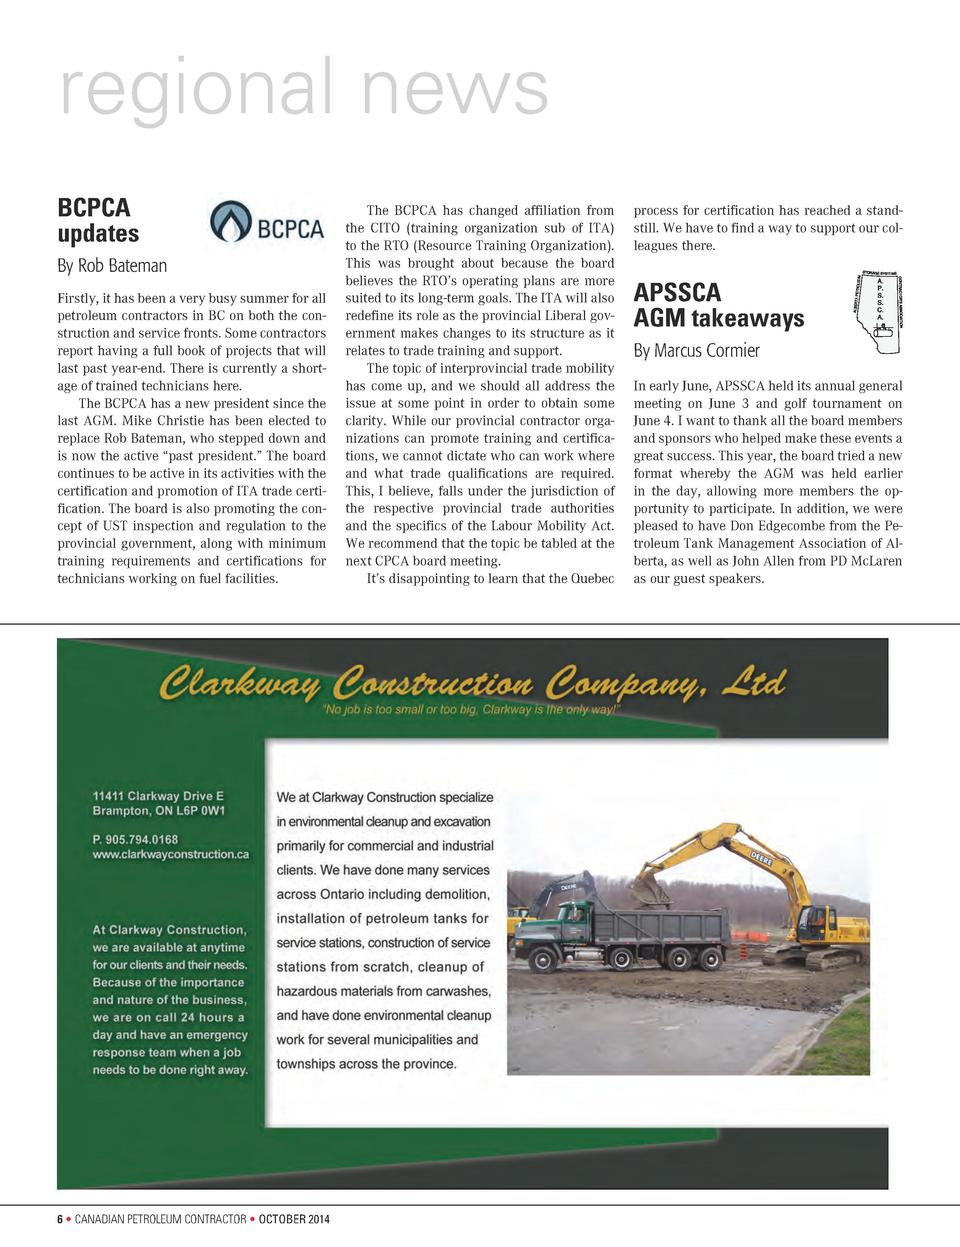 regional news BCPCA updates By Rob Bateman Firstly, it has been a very busy summer for all petroleum contractors in BC on ...